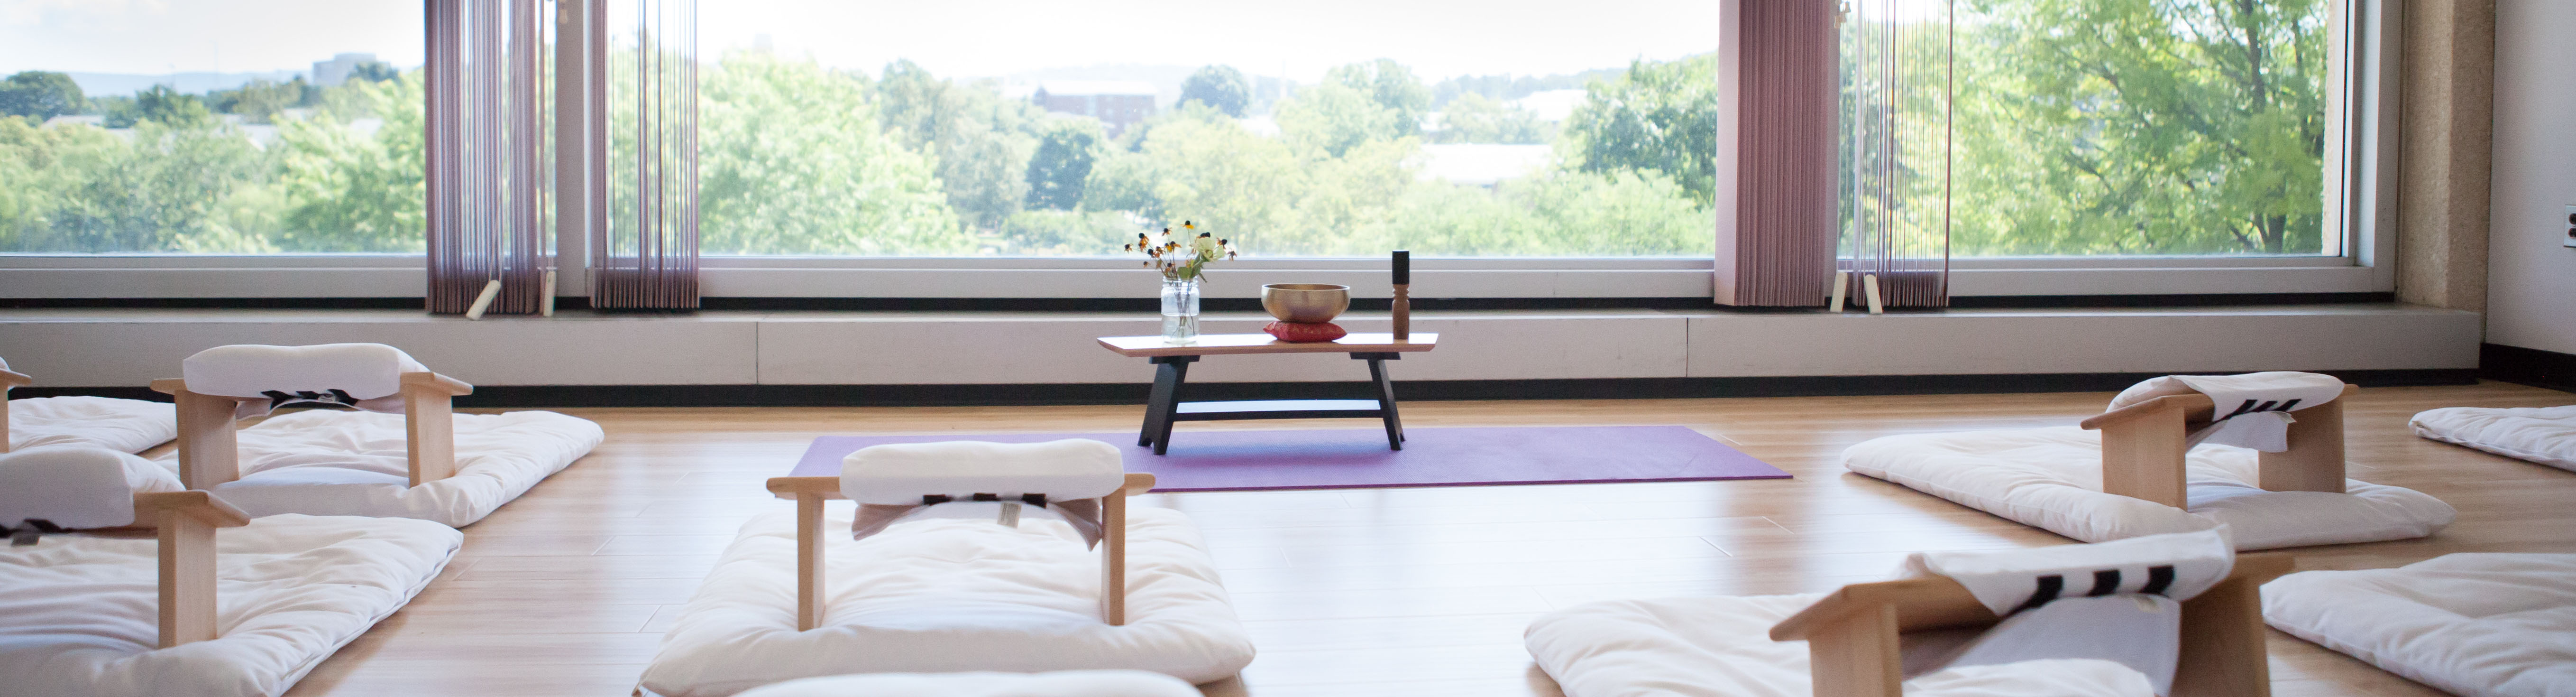 Meditation Room at JMU. Mats with headrests are lined up in front of a window.